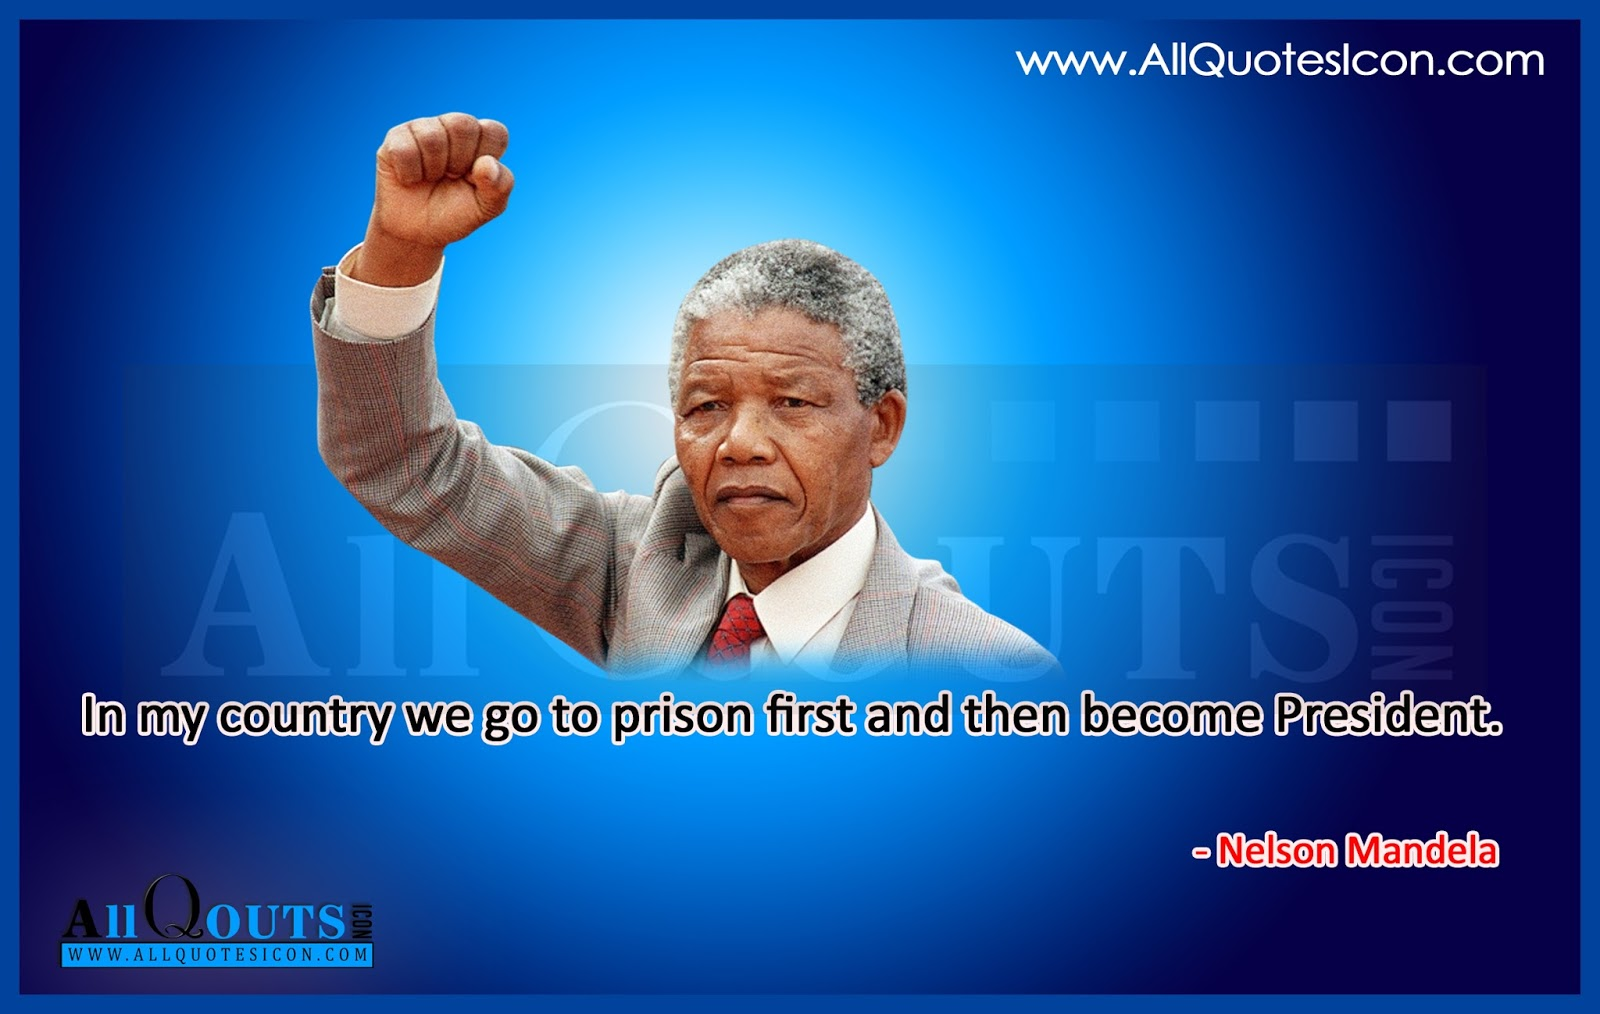 nelson mandela thoughts and quotes in english hd wallpapers | www